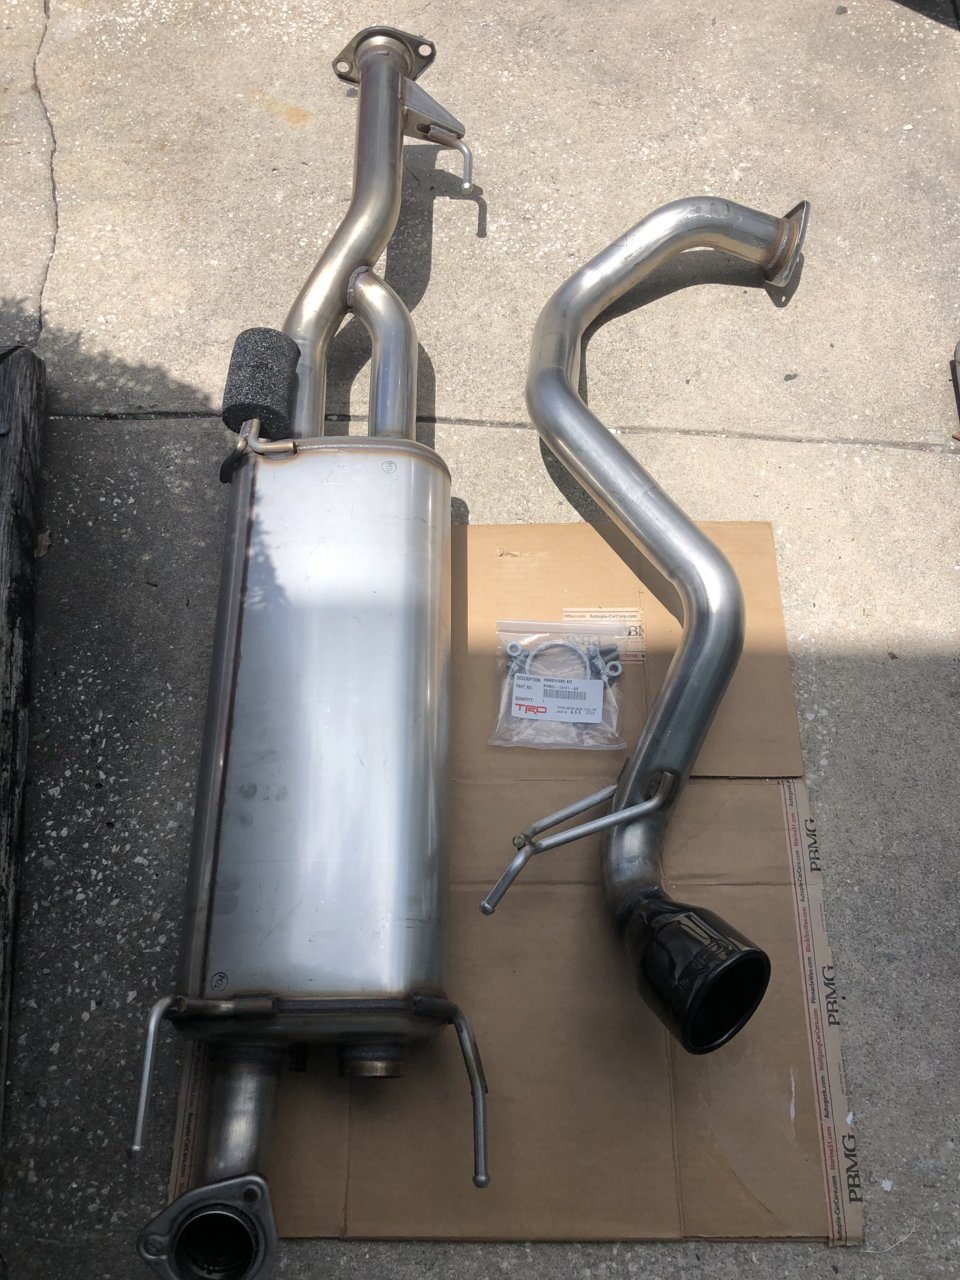 2020 oem trd exhaust sold toyota